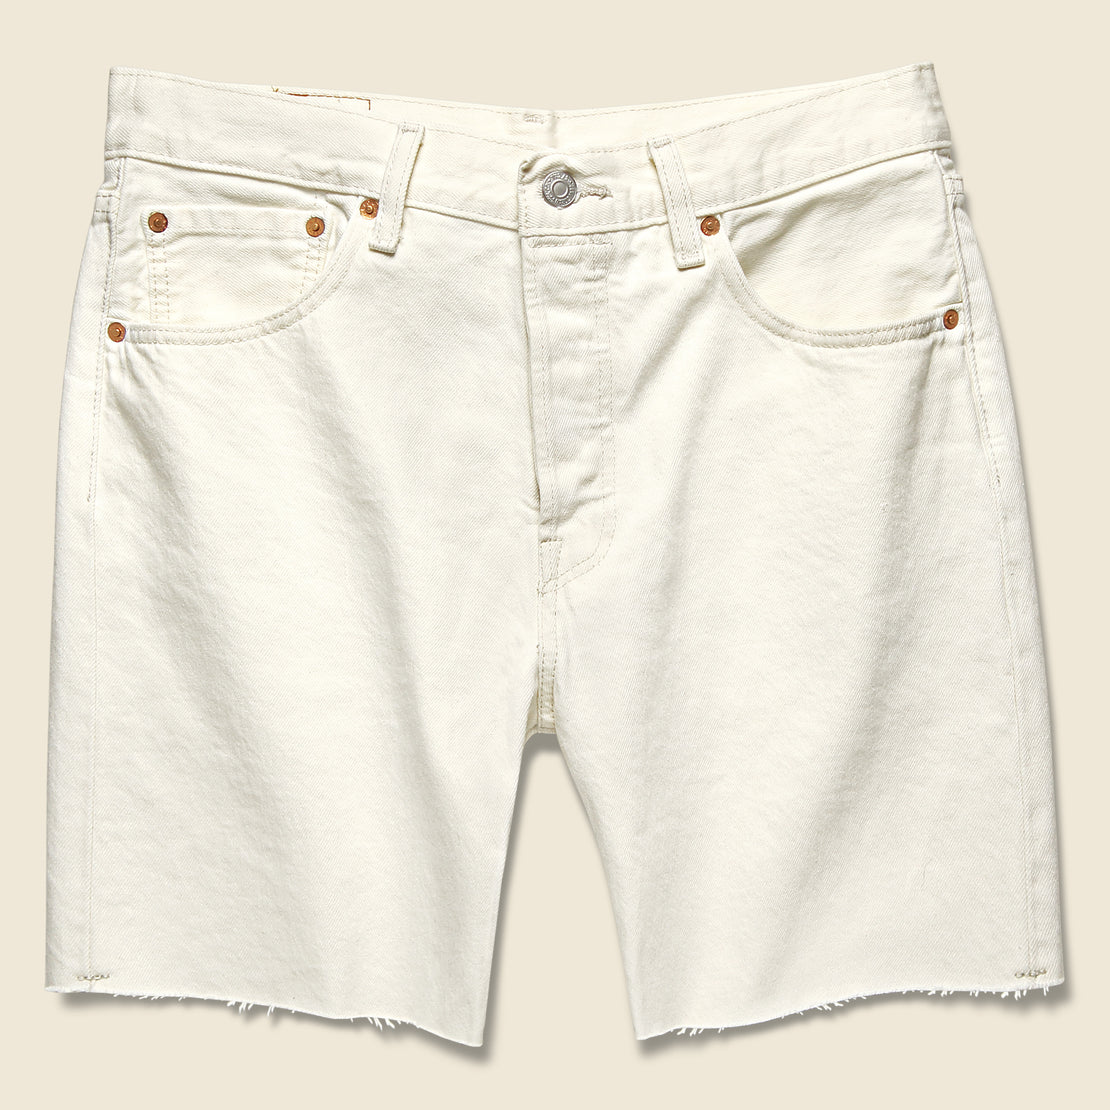 Levis Premium 501 '93 Cut Off Short - Mortadella